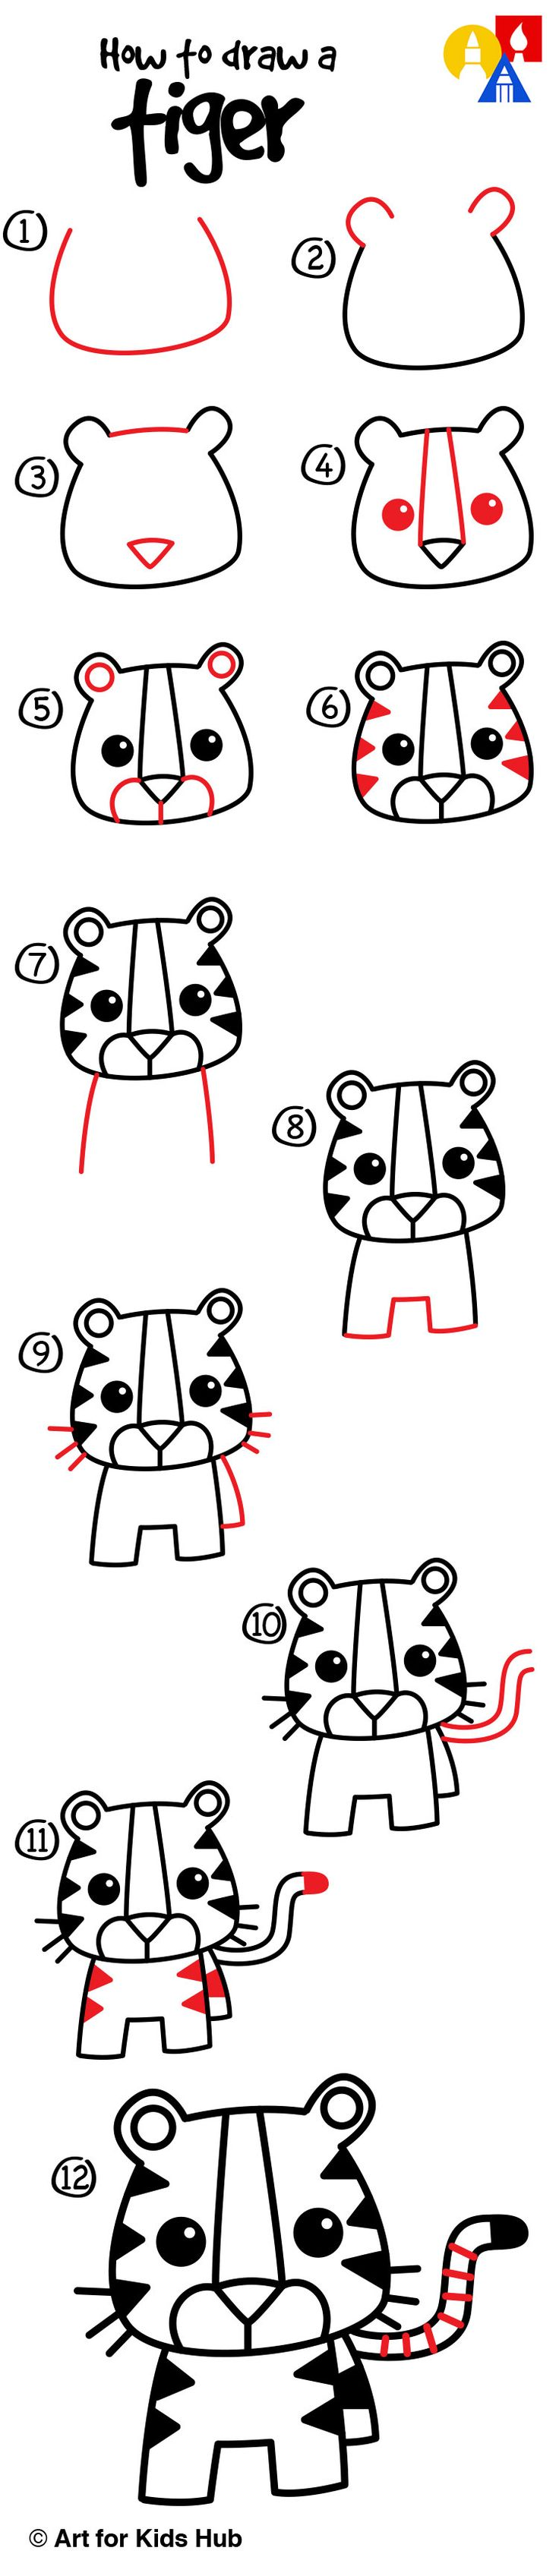 Uncategorized How To Draw A Tiger Step By Step best 25 how to draw tiger ideas on pinterest cartoon a art for kids hub